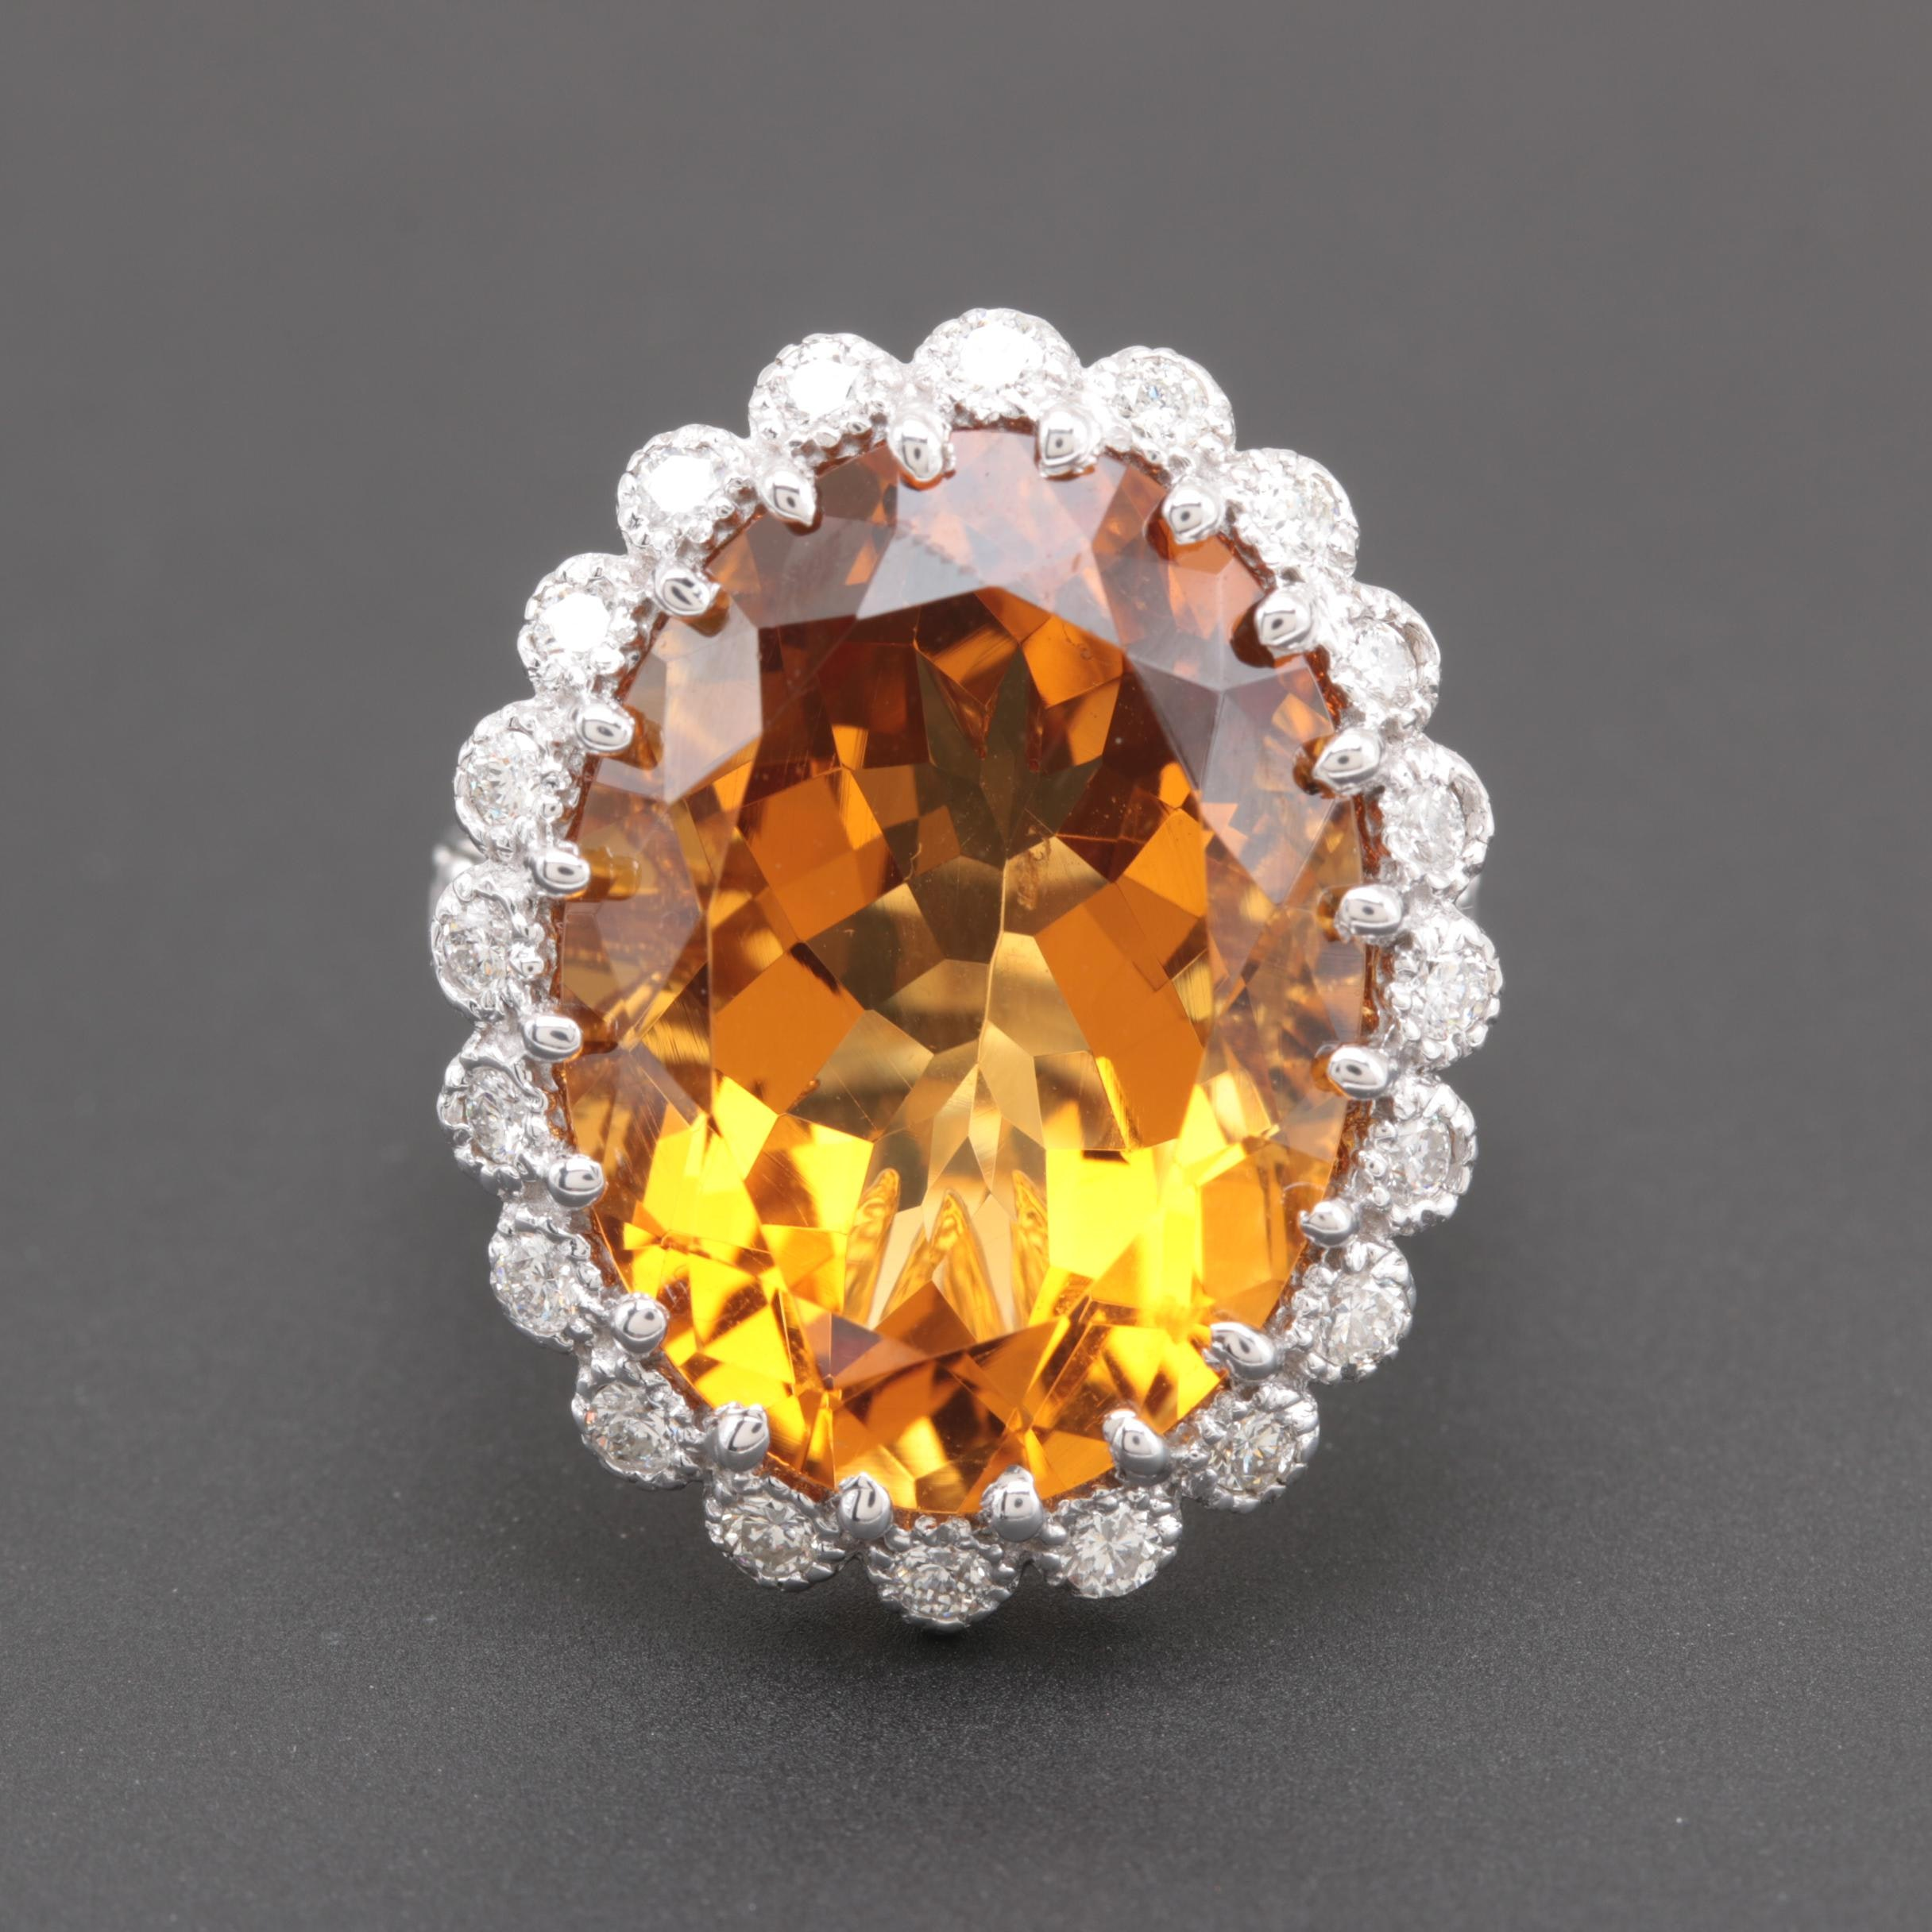 14K White Gold 14.16 CT Citrine and Diamond Ring